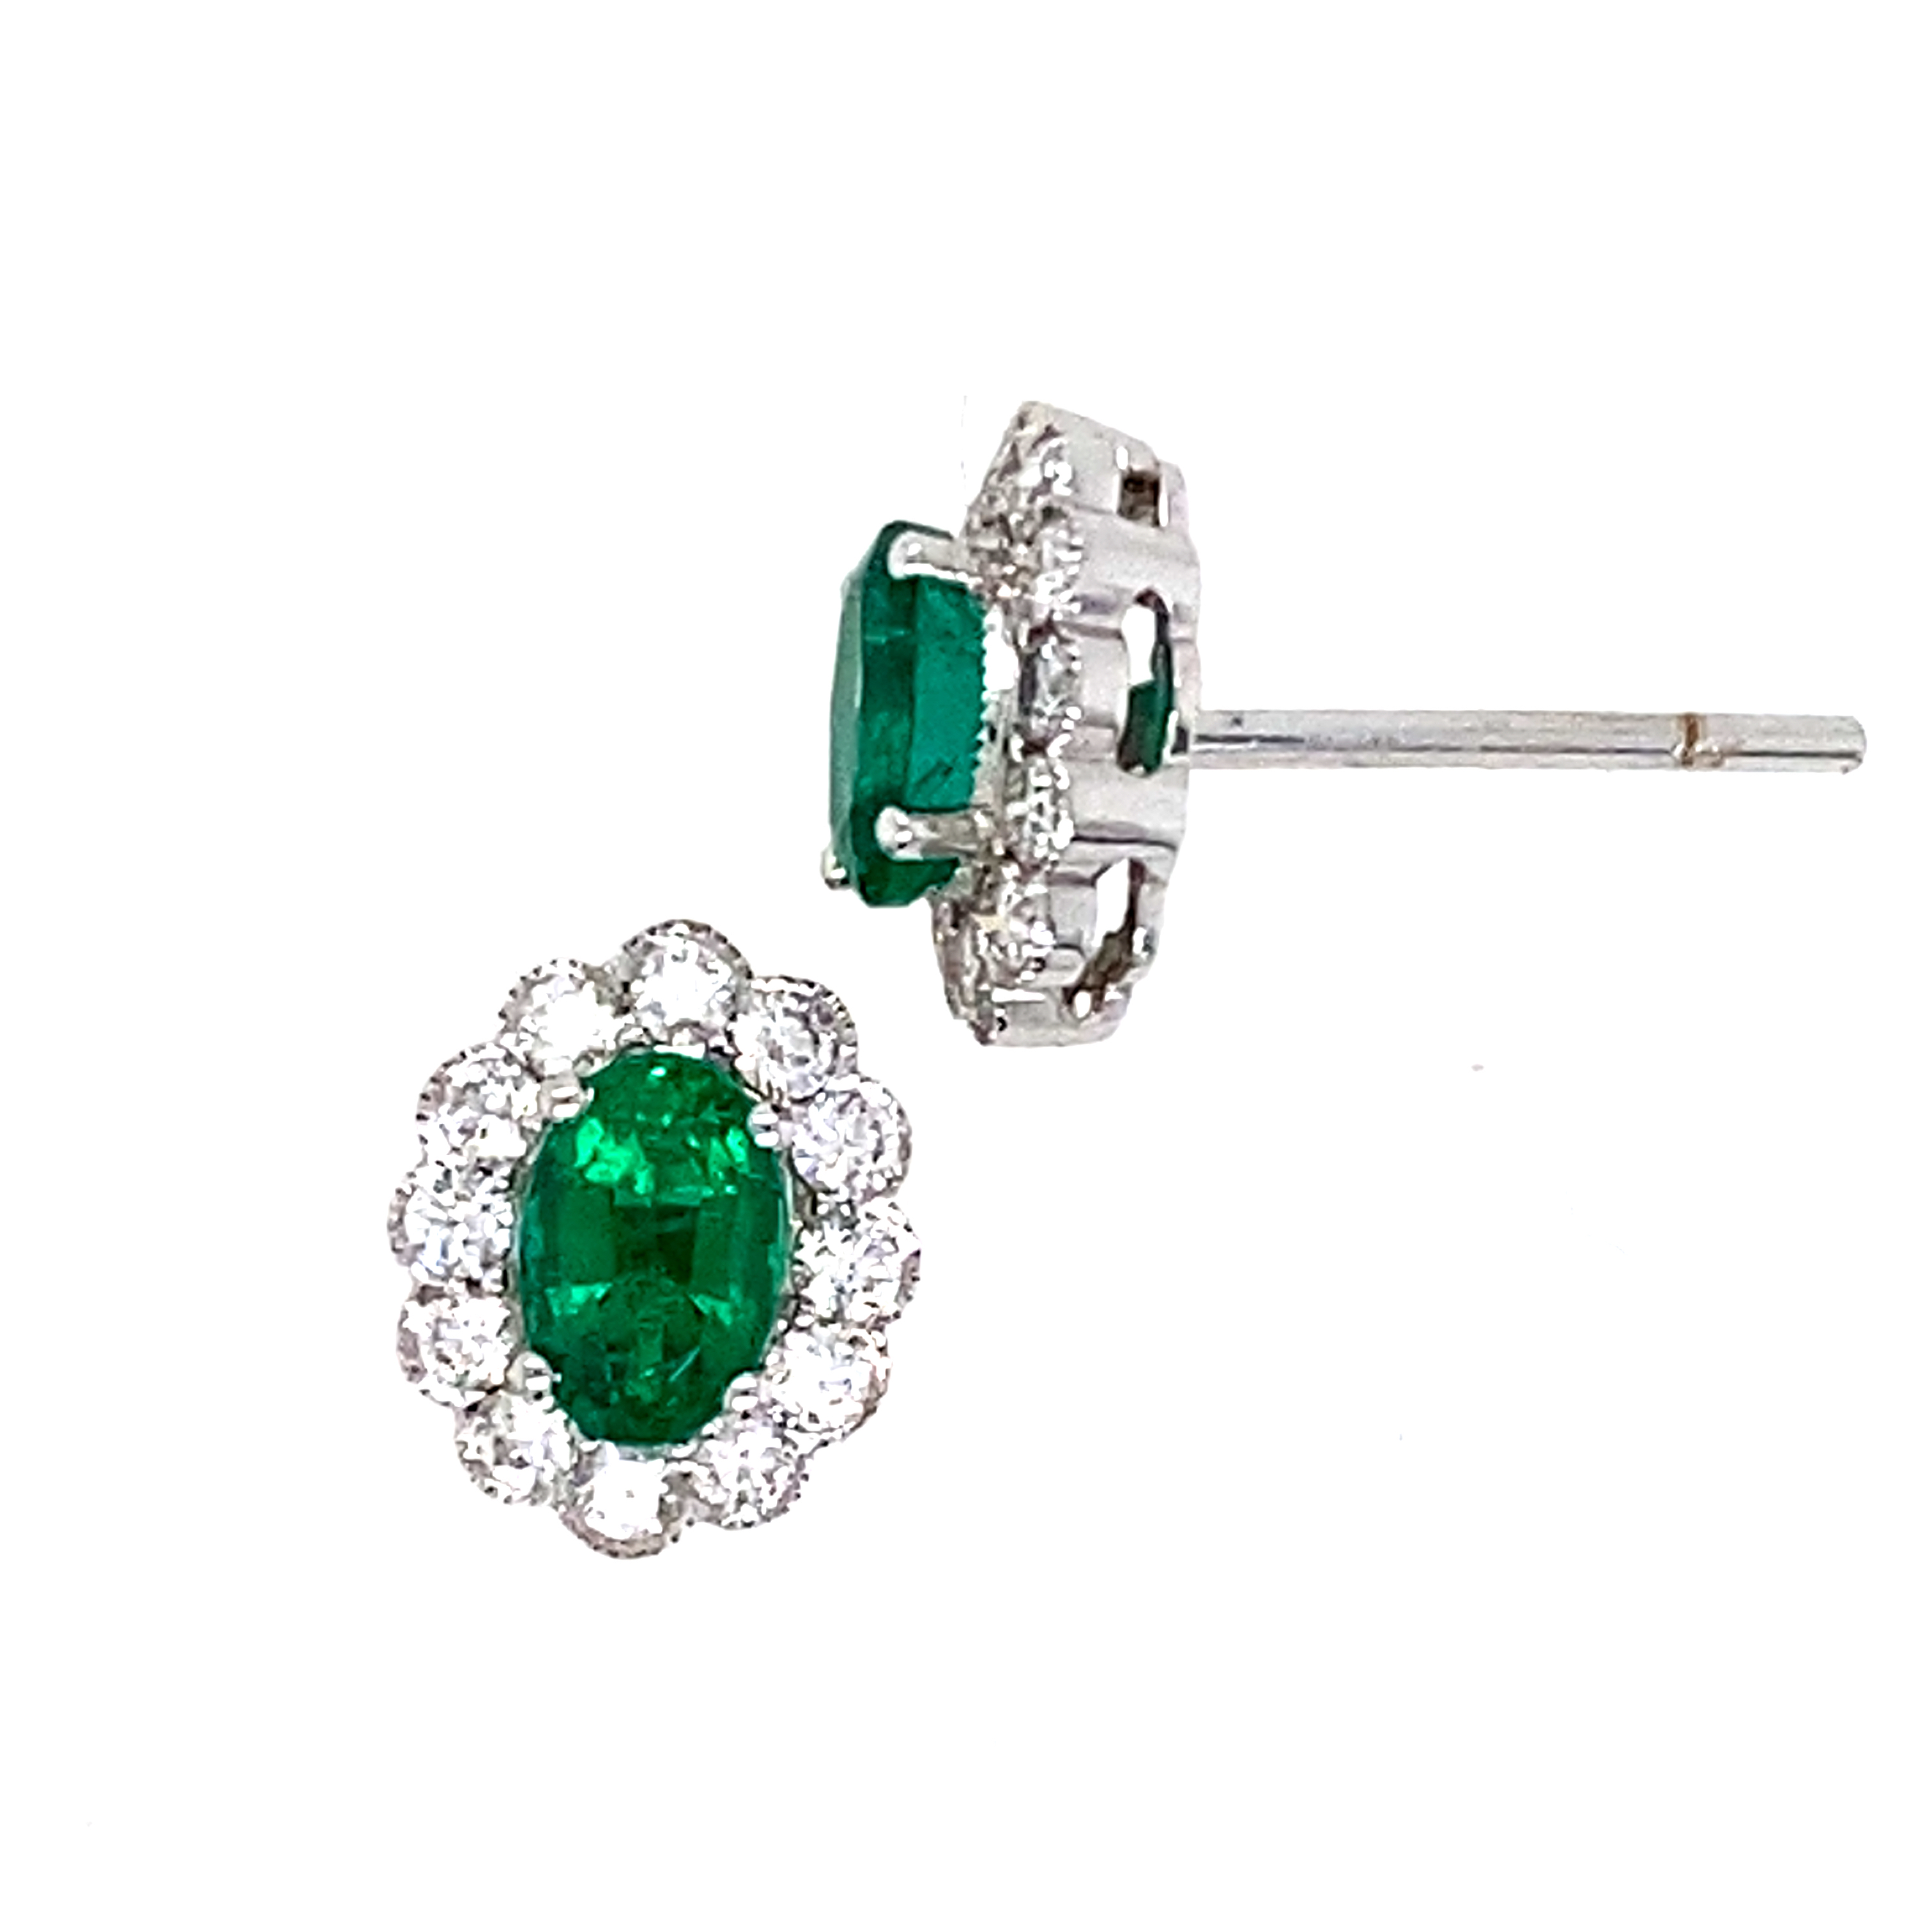 18 White Gold Diamond and Emerald Stud Earrings